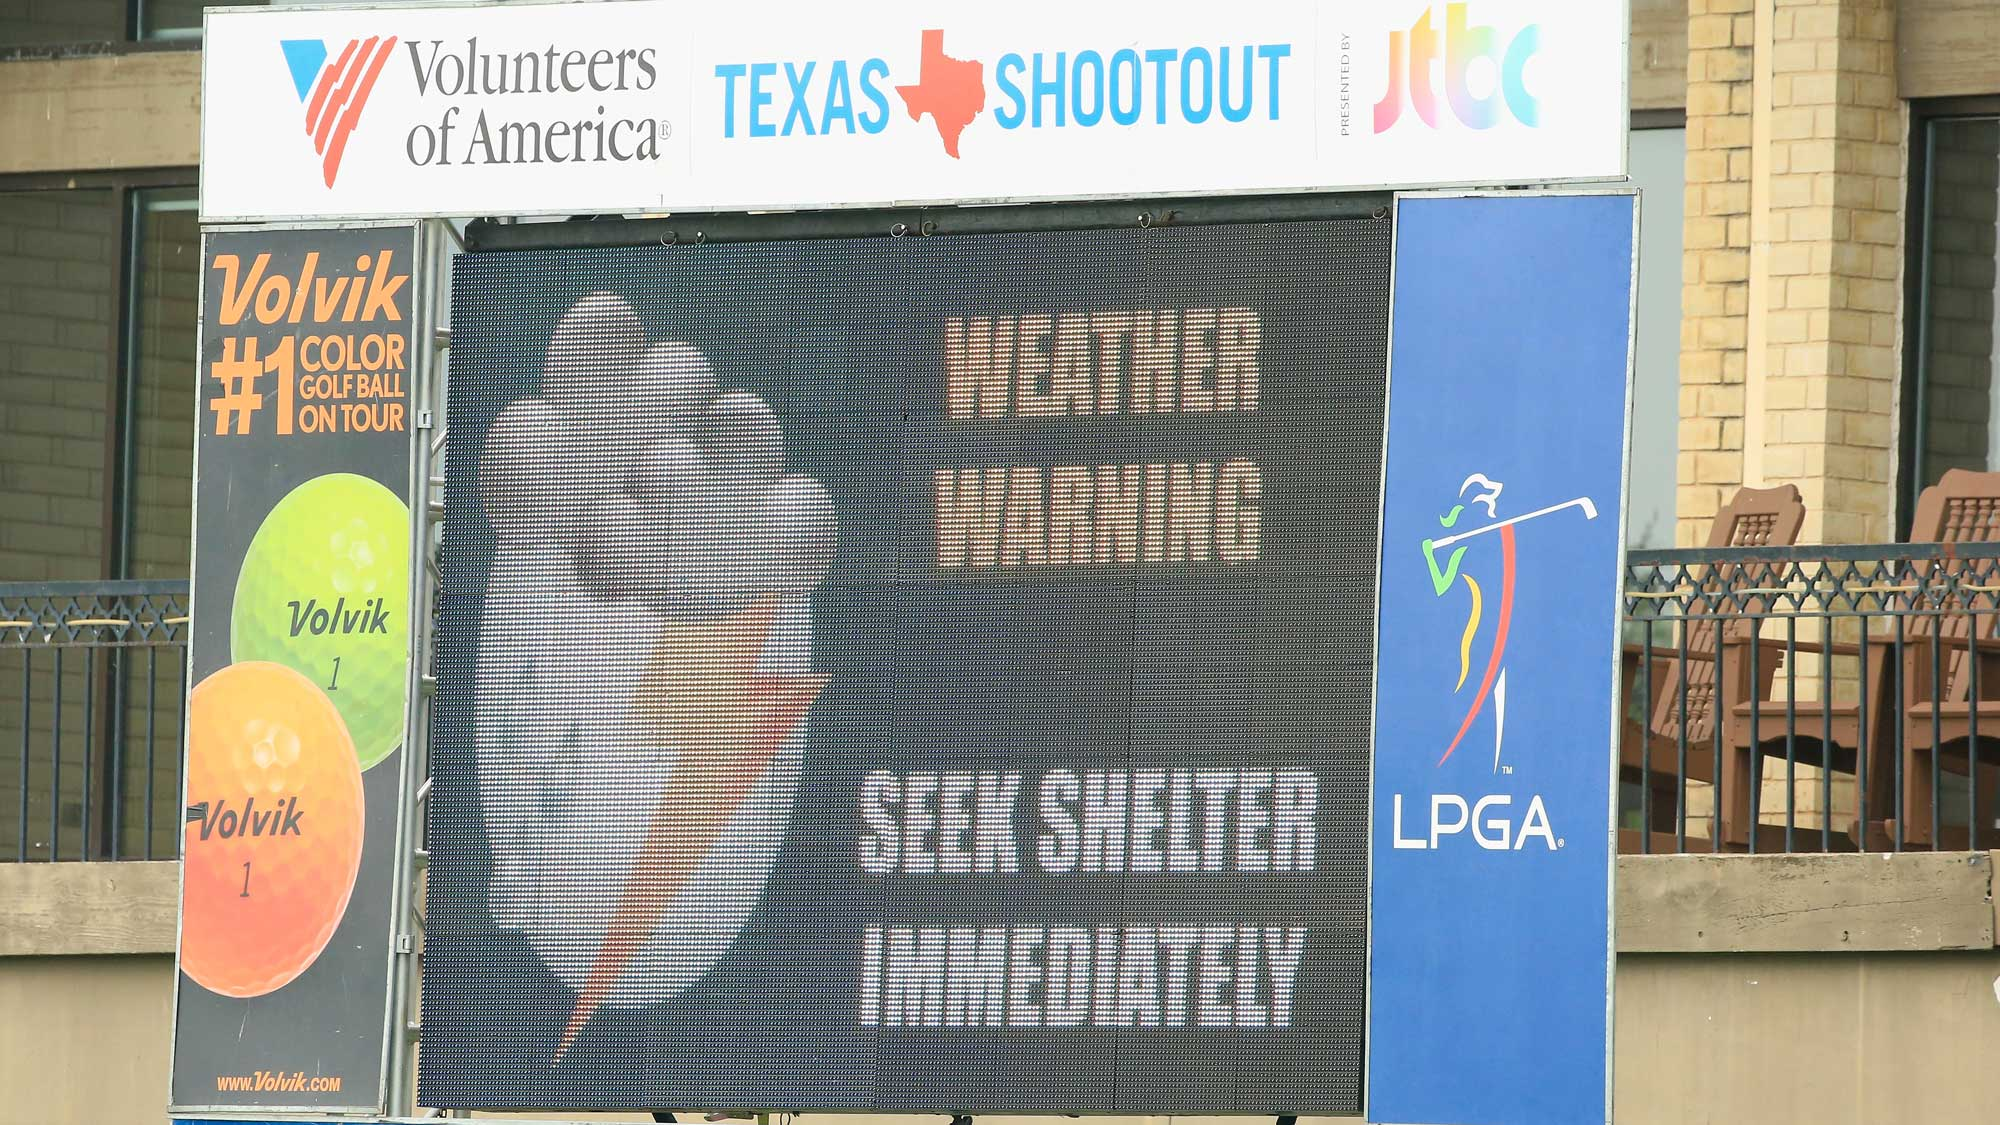 A warning sign is seen after play was suspended by dangerous weather during the second round of the Volunteers of America Texas Shootout